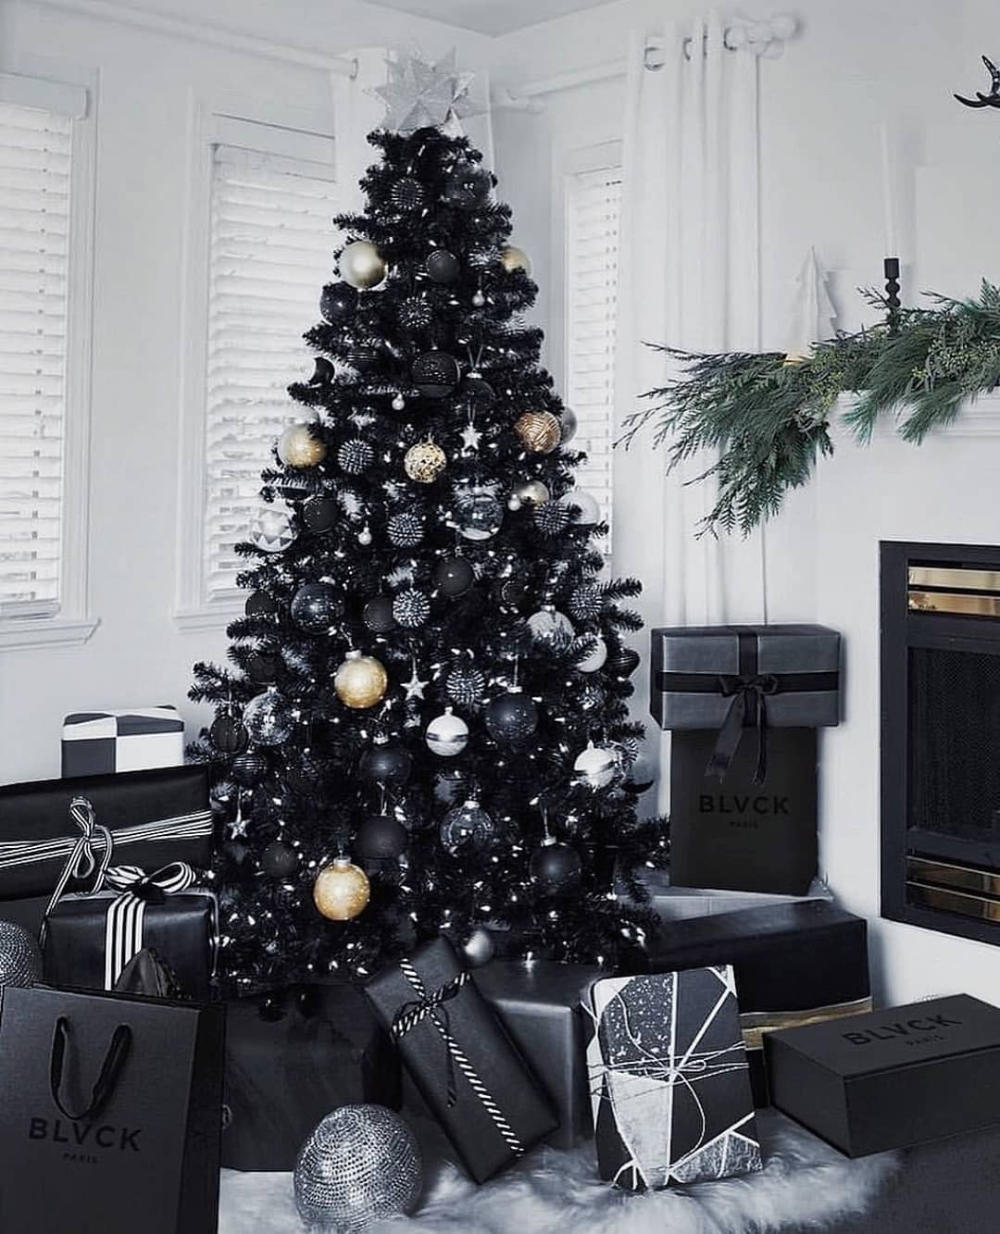 I Straight Up Begged My Family To Get A Black Christmas Tree Last Year Black Christmas Decorations Fun Christmas Decorations Black Christmas Tree Decorations